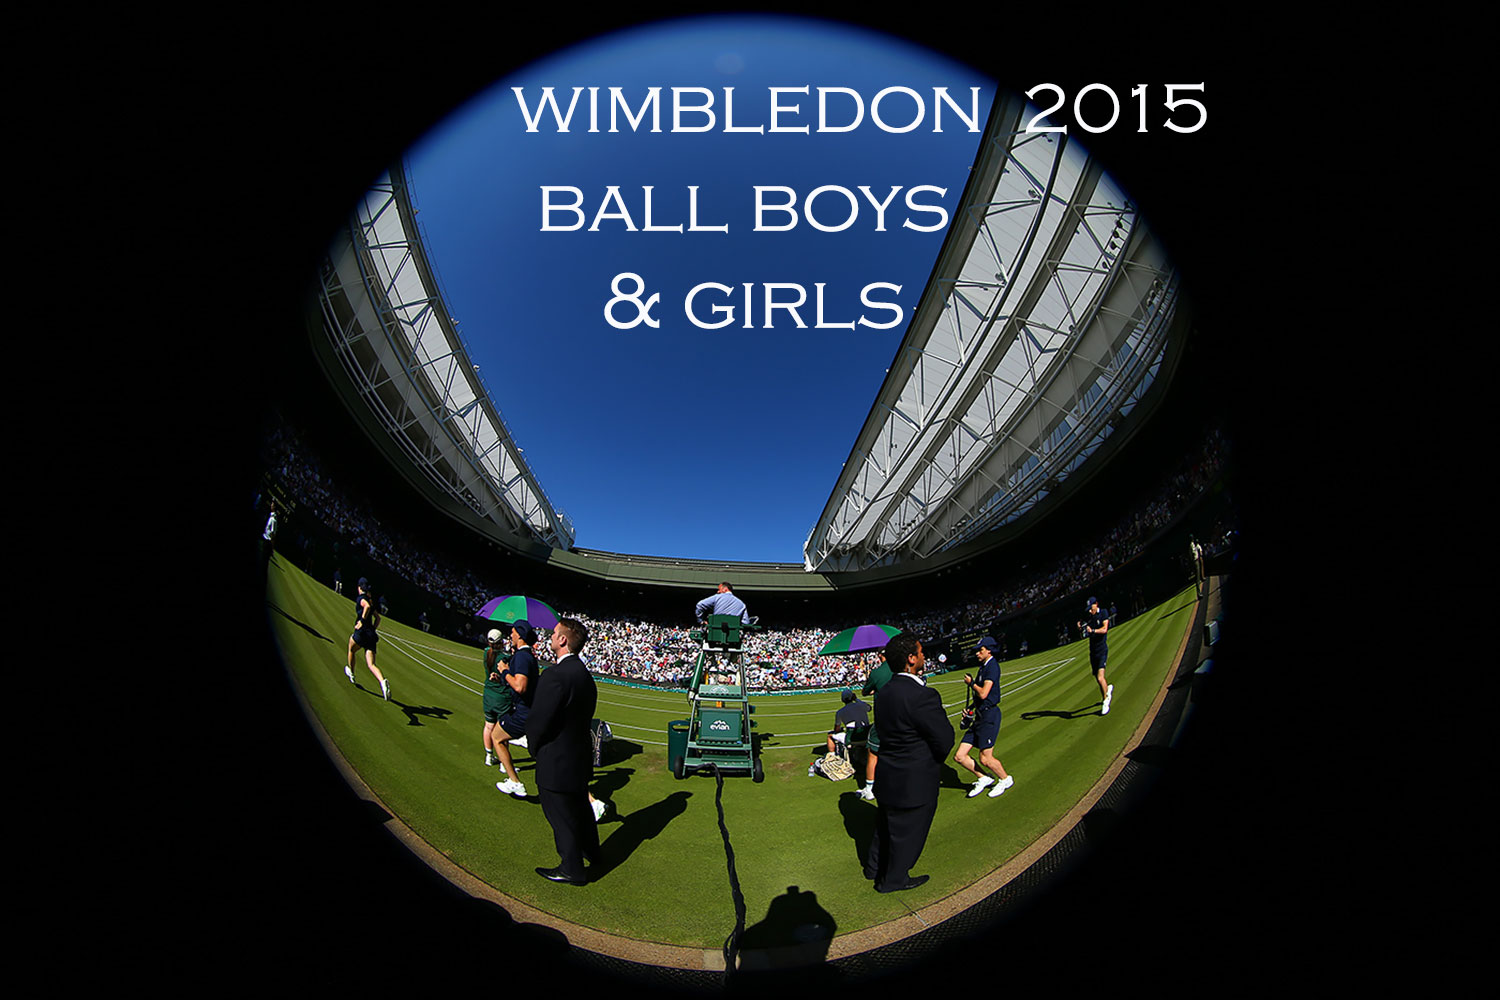 Wimbledon 2015 ball boys and girls